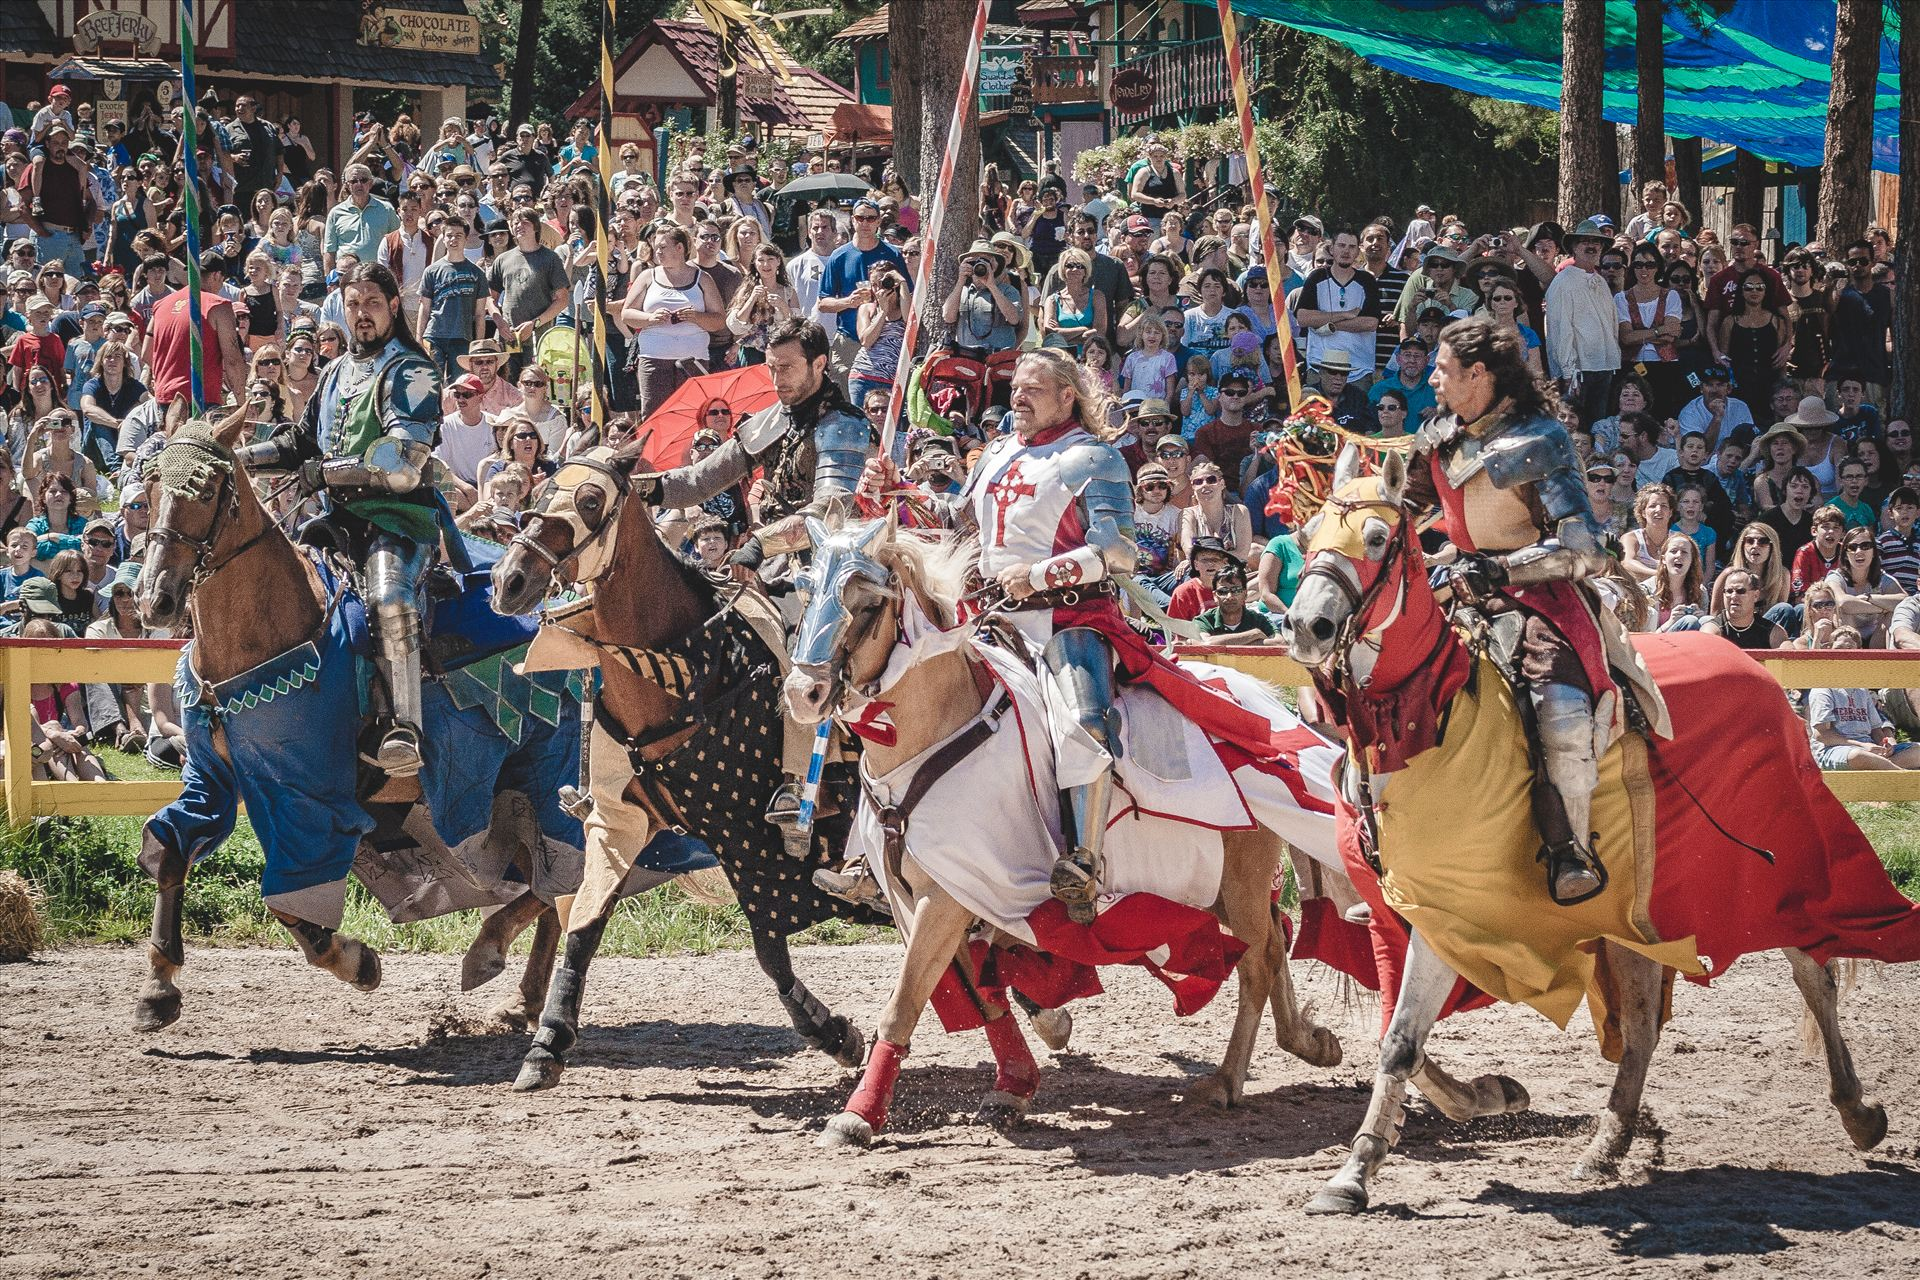 Renaissance Faire - The annual Renaissance Faire in Larkspur, Colorado by D Scott Smith